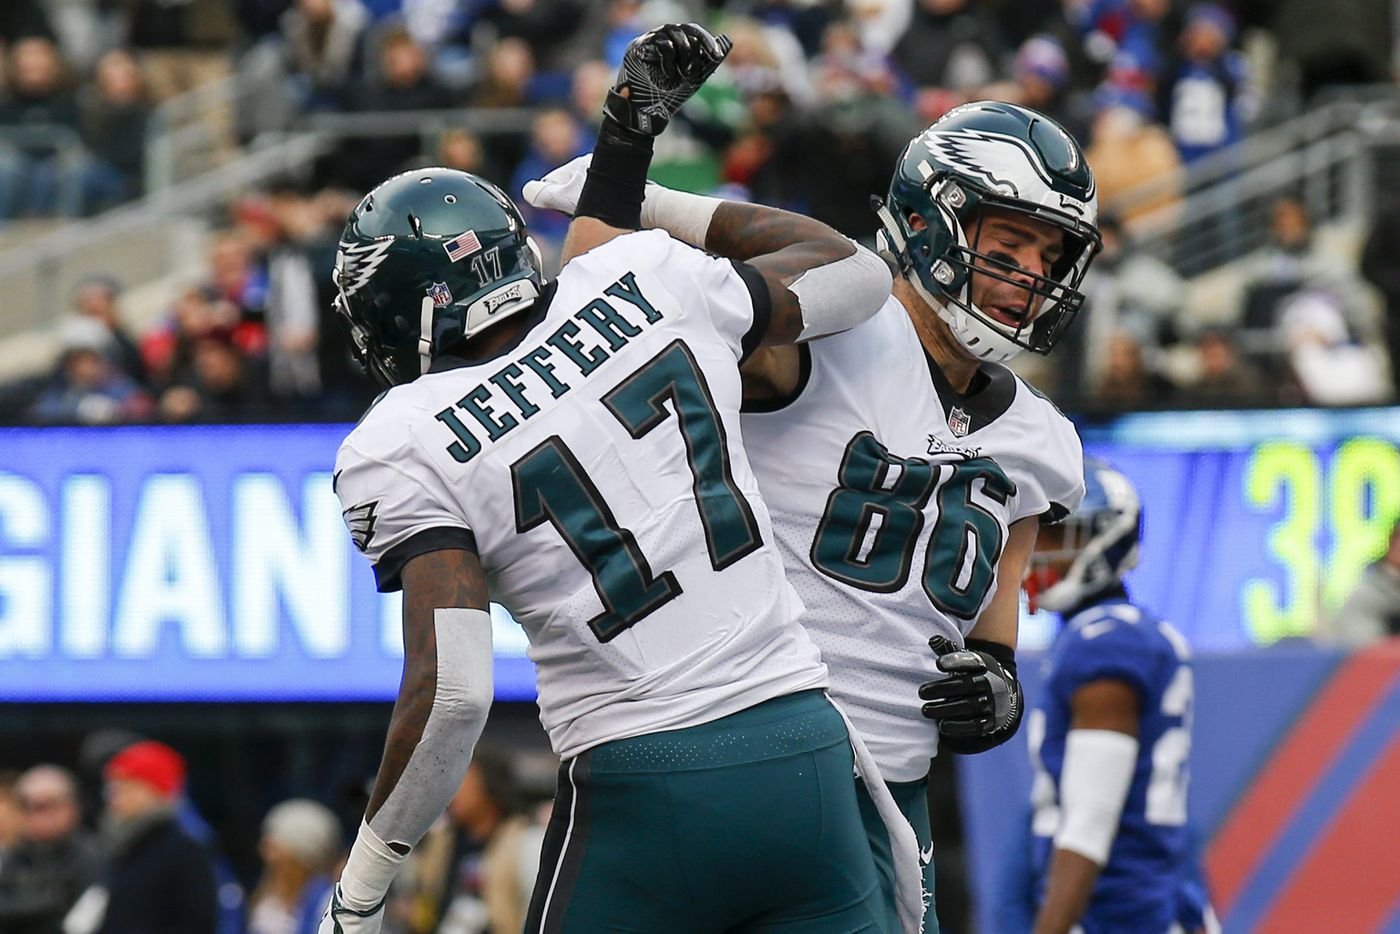 Beckham makes scene, Giants drop to 1-5 with loss to Eagles